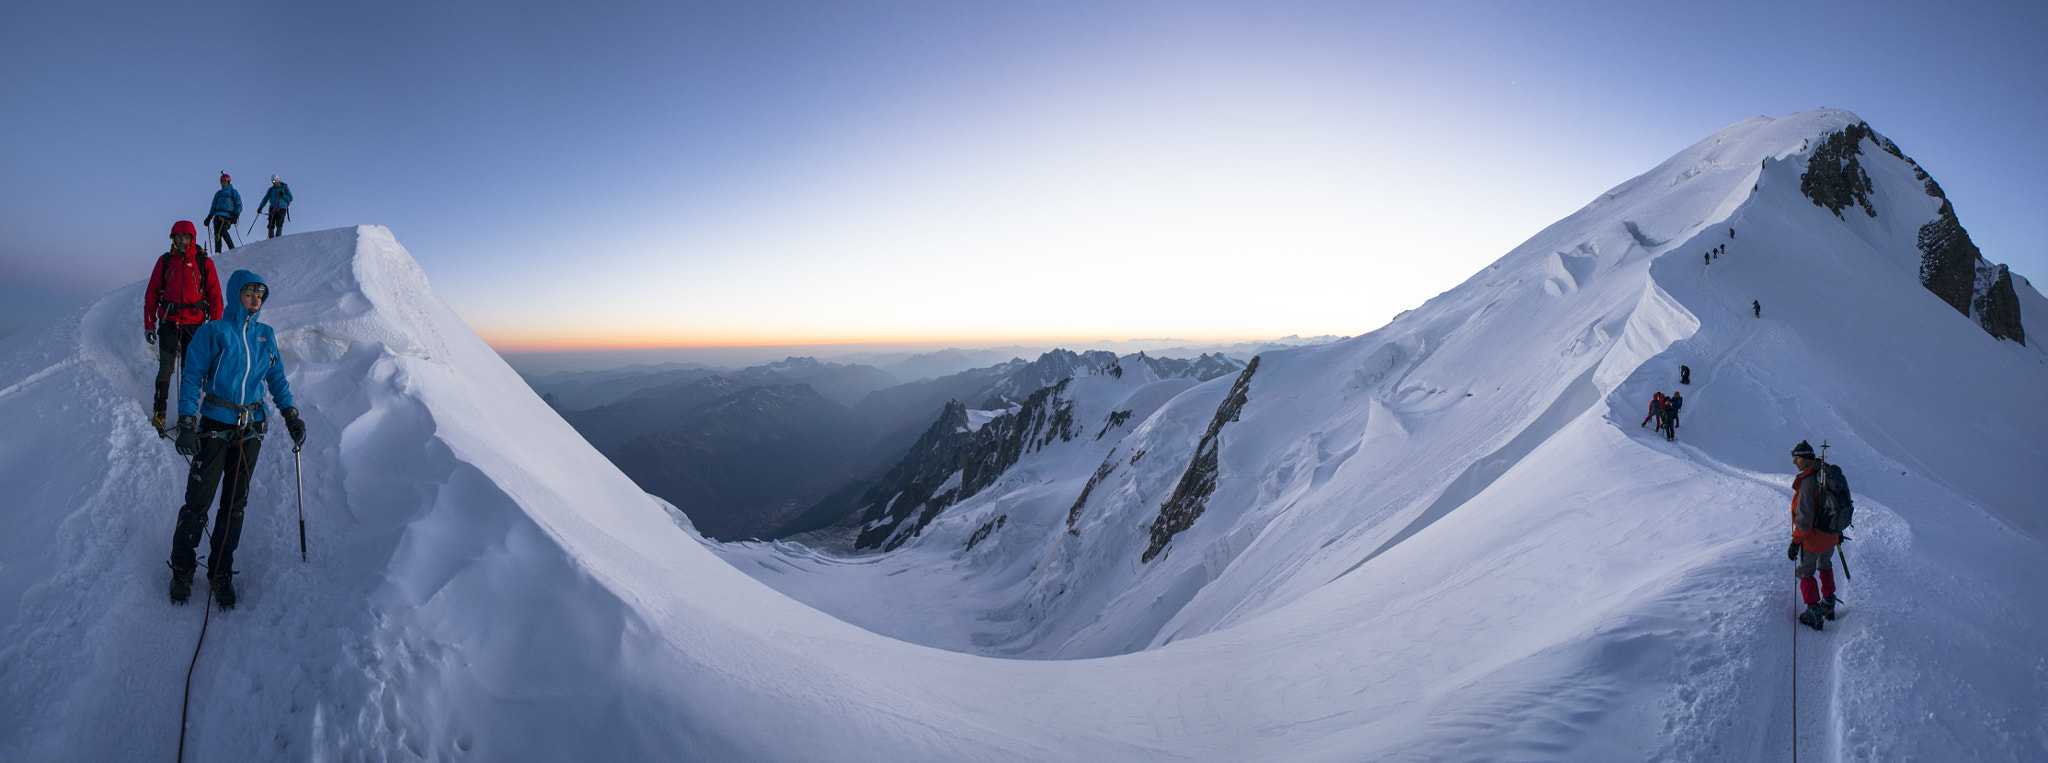 Photograph Mont Blanc by Robert Kovacs on 500px